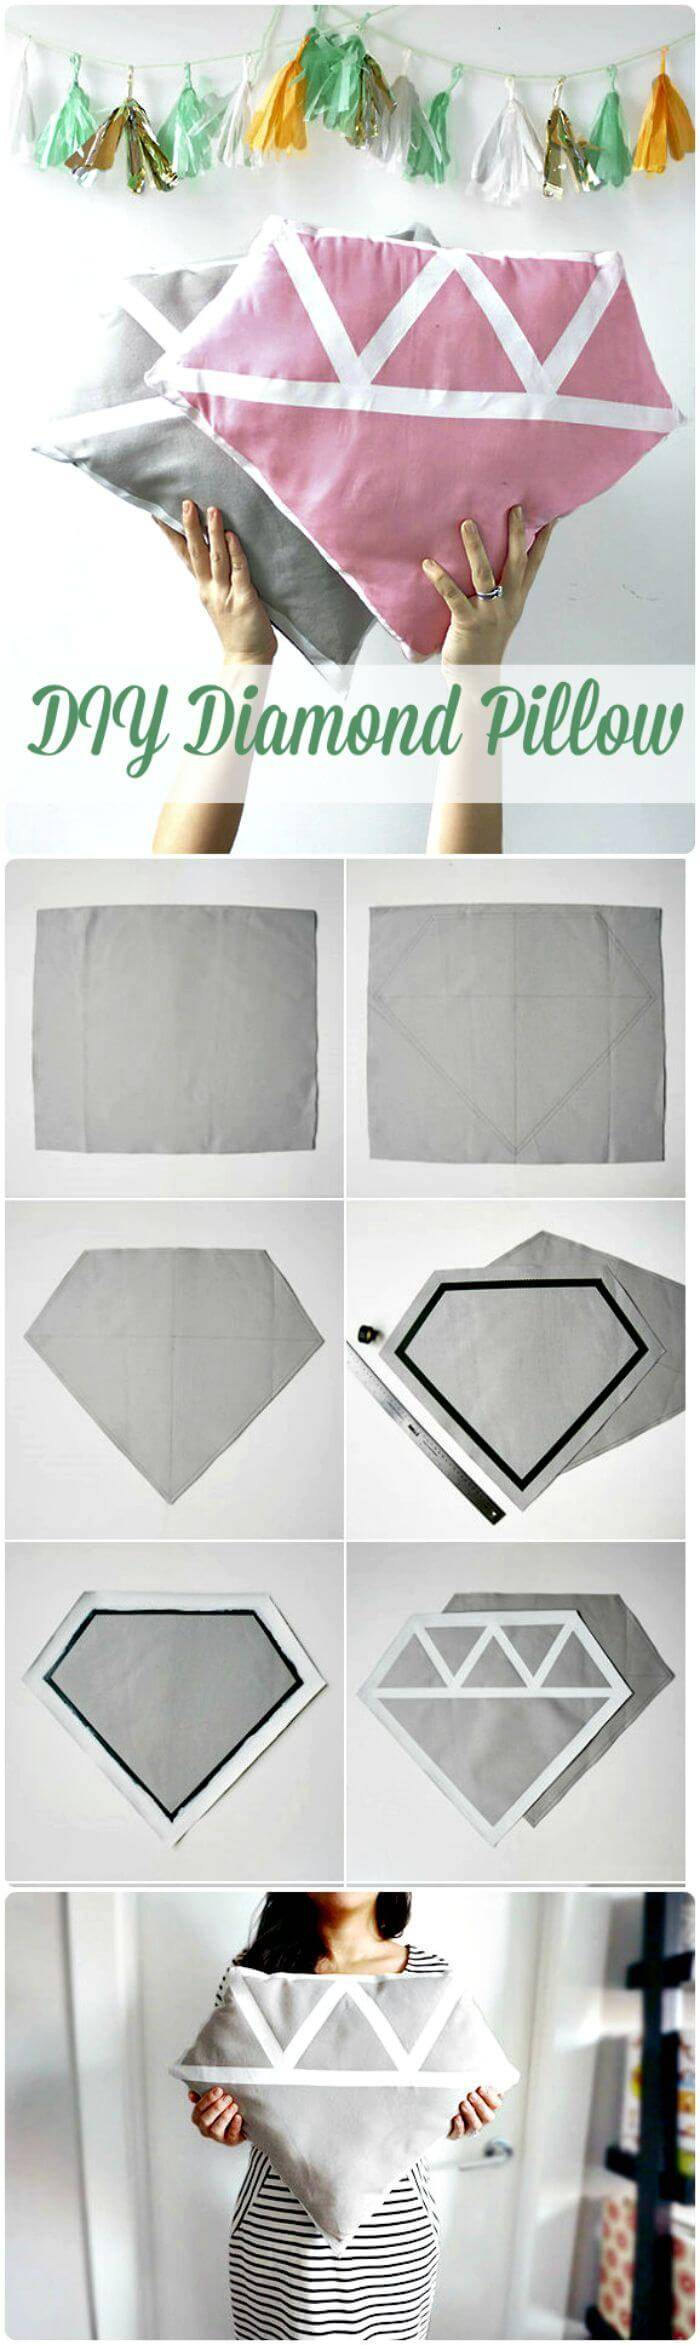 DIY Diamond Pillow